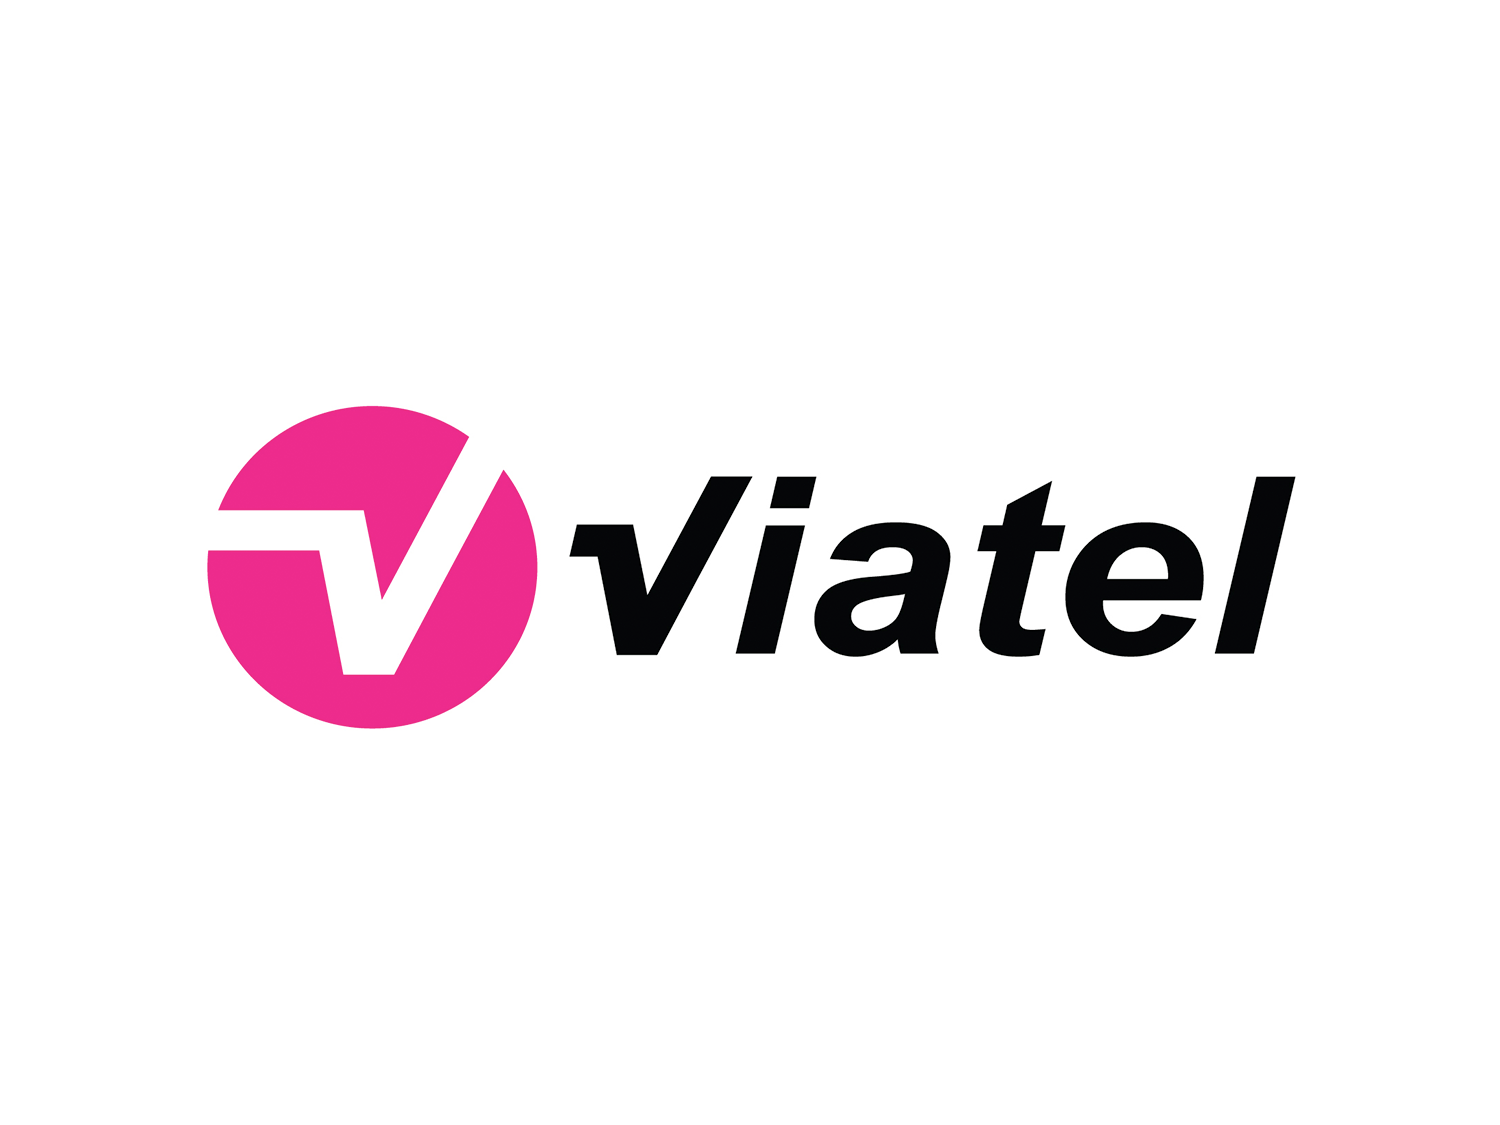 Customer Logos-Websiteviatel.png